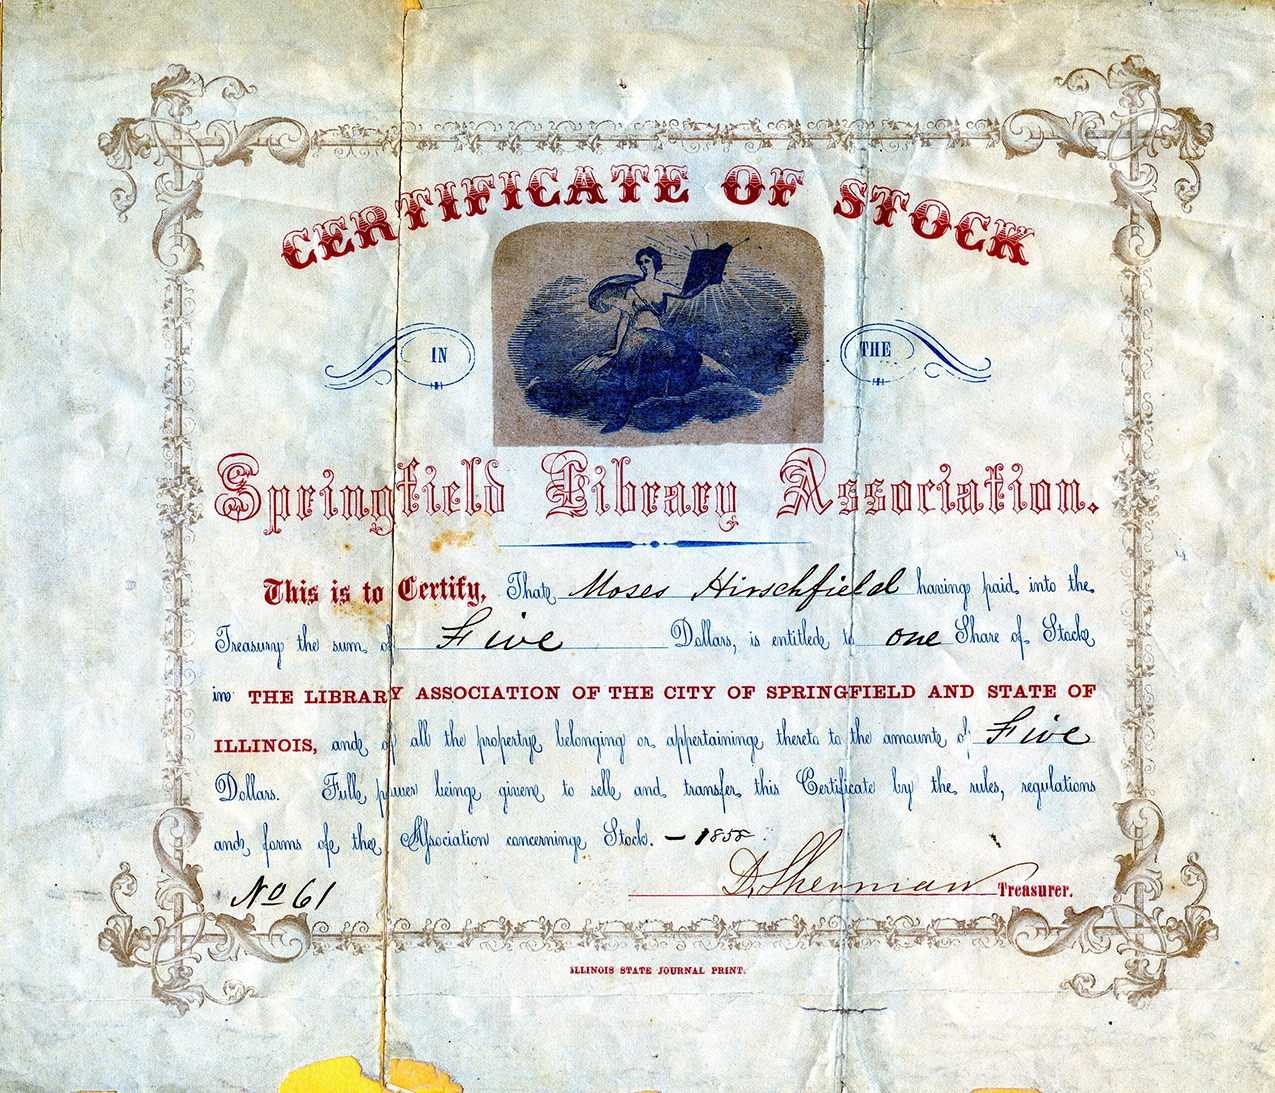 The Library Association Certificate from 1858